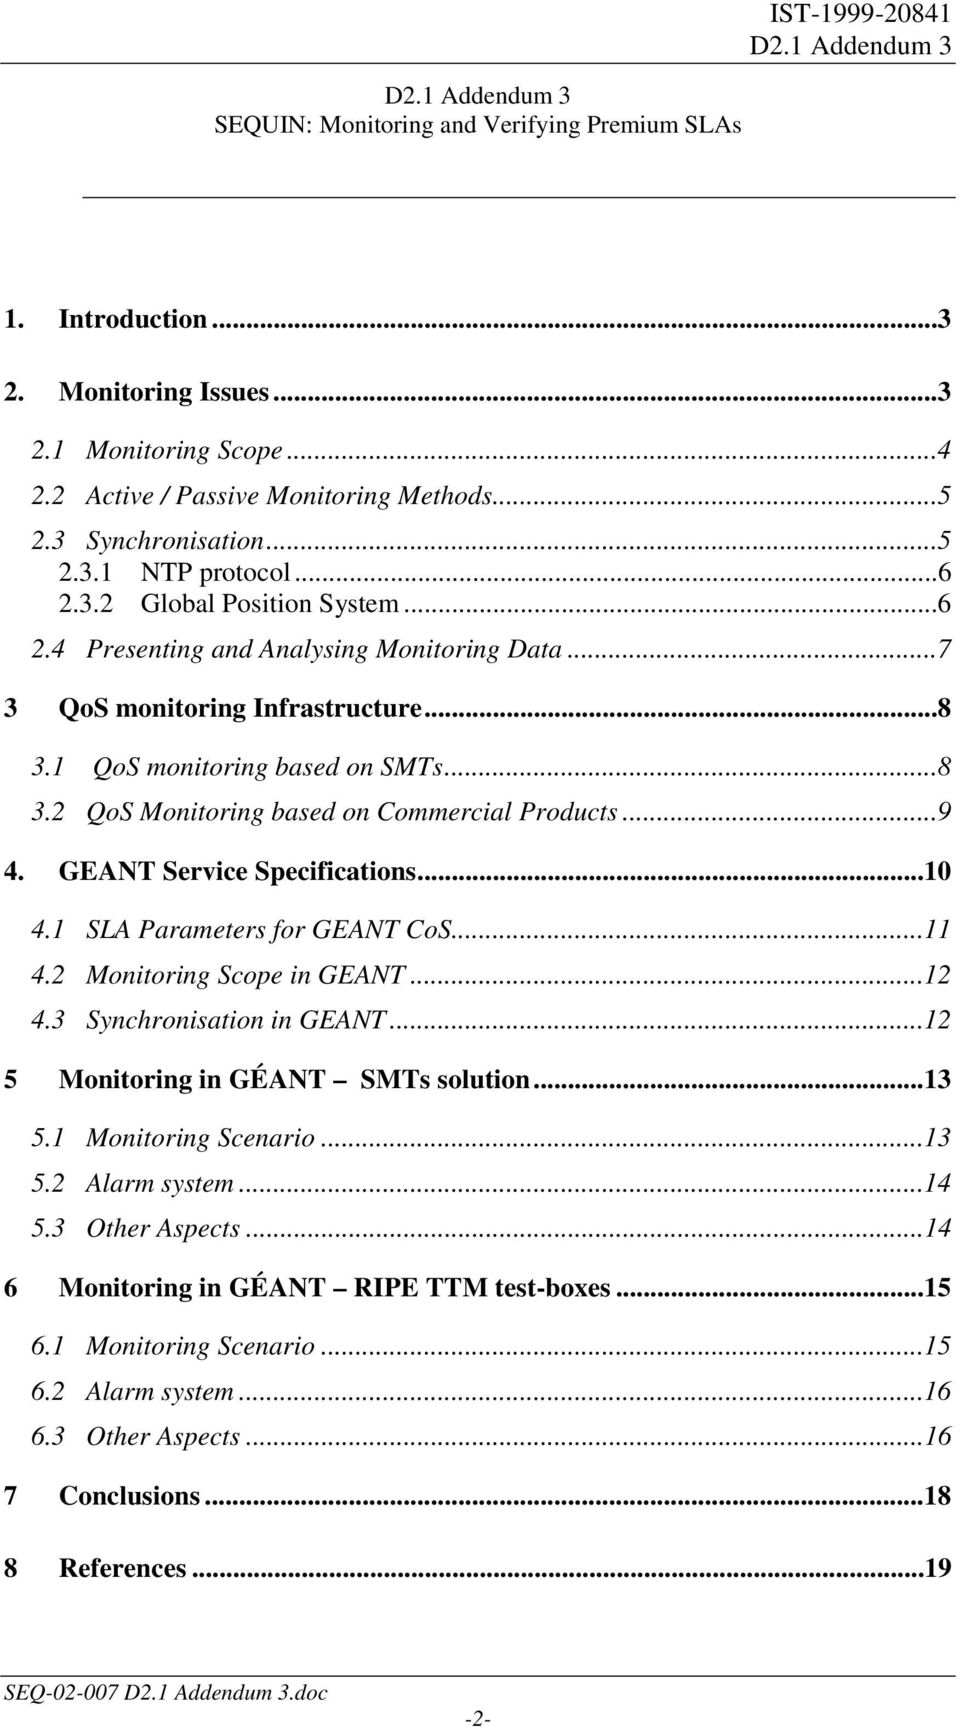 ..9 4. GEANT Service Specifications...10 4.1 SLA Parameters for GEANT CoS...11 4.2 Monitoring Scope in GEANT...12 4.3 Synchronisation in GEANT...12 5 Monitoring in GÉANT SMTs solution...13 5.